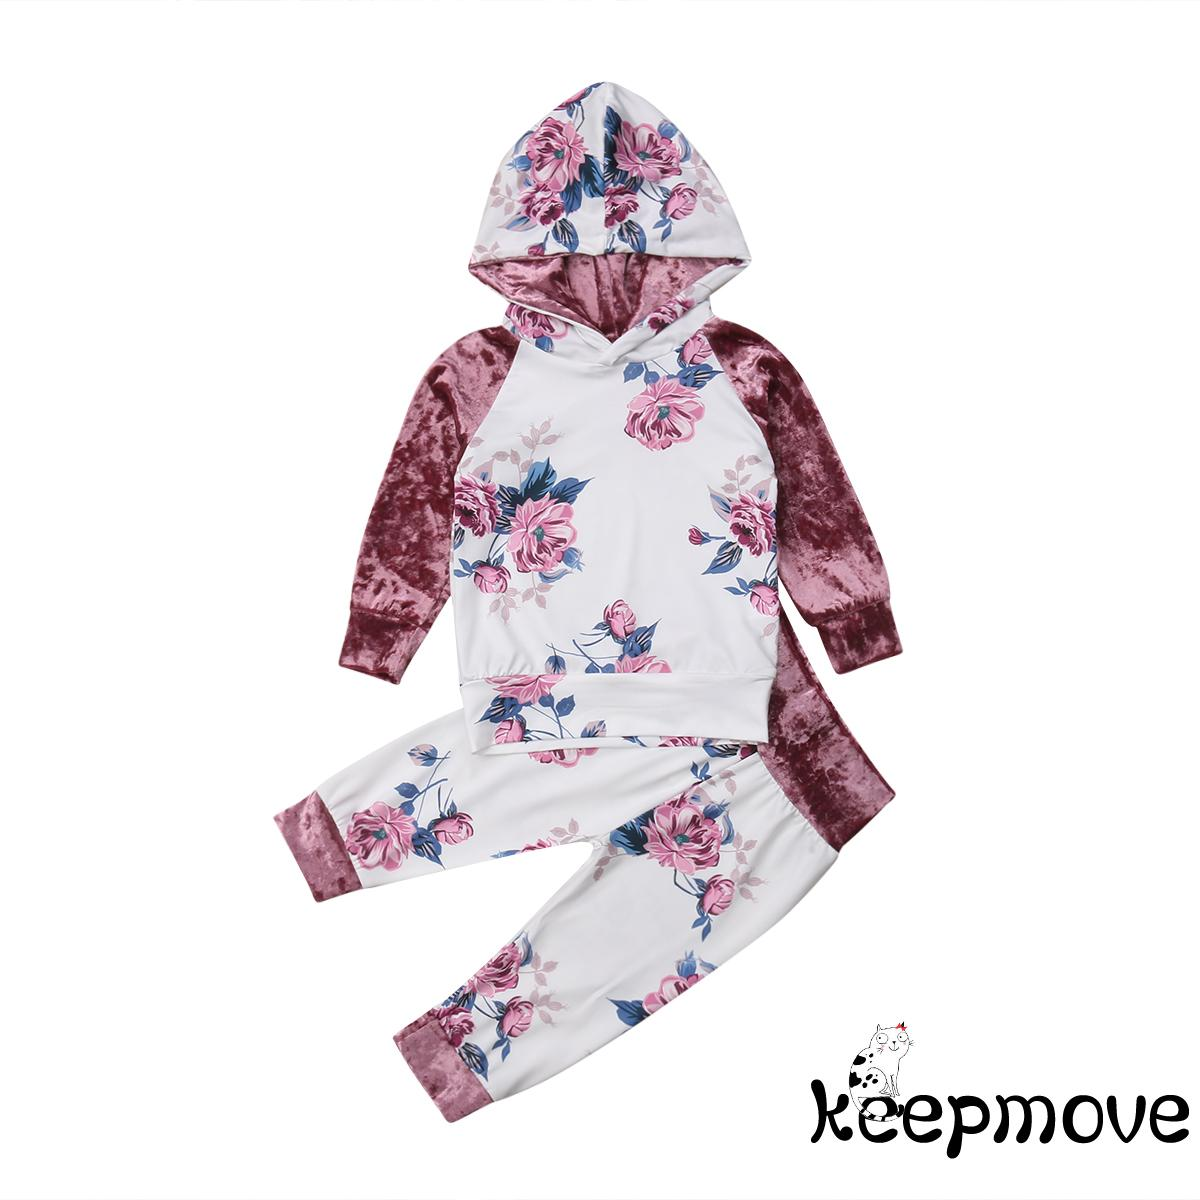 2pcs Set Baby Girls Kids Baby Velvet Hoodie Clothes T Shirt Top Pants Tracksuit Outfit Set 1 6years Shopee Singapore